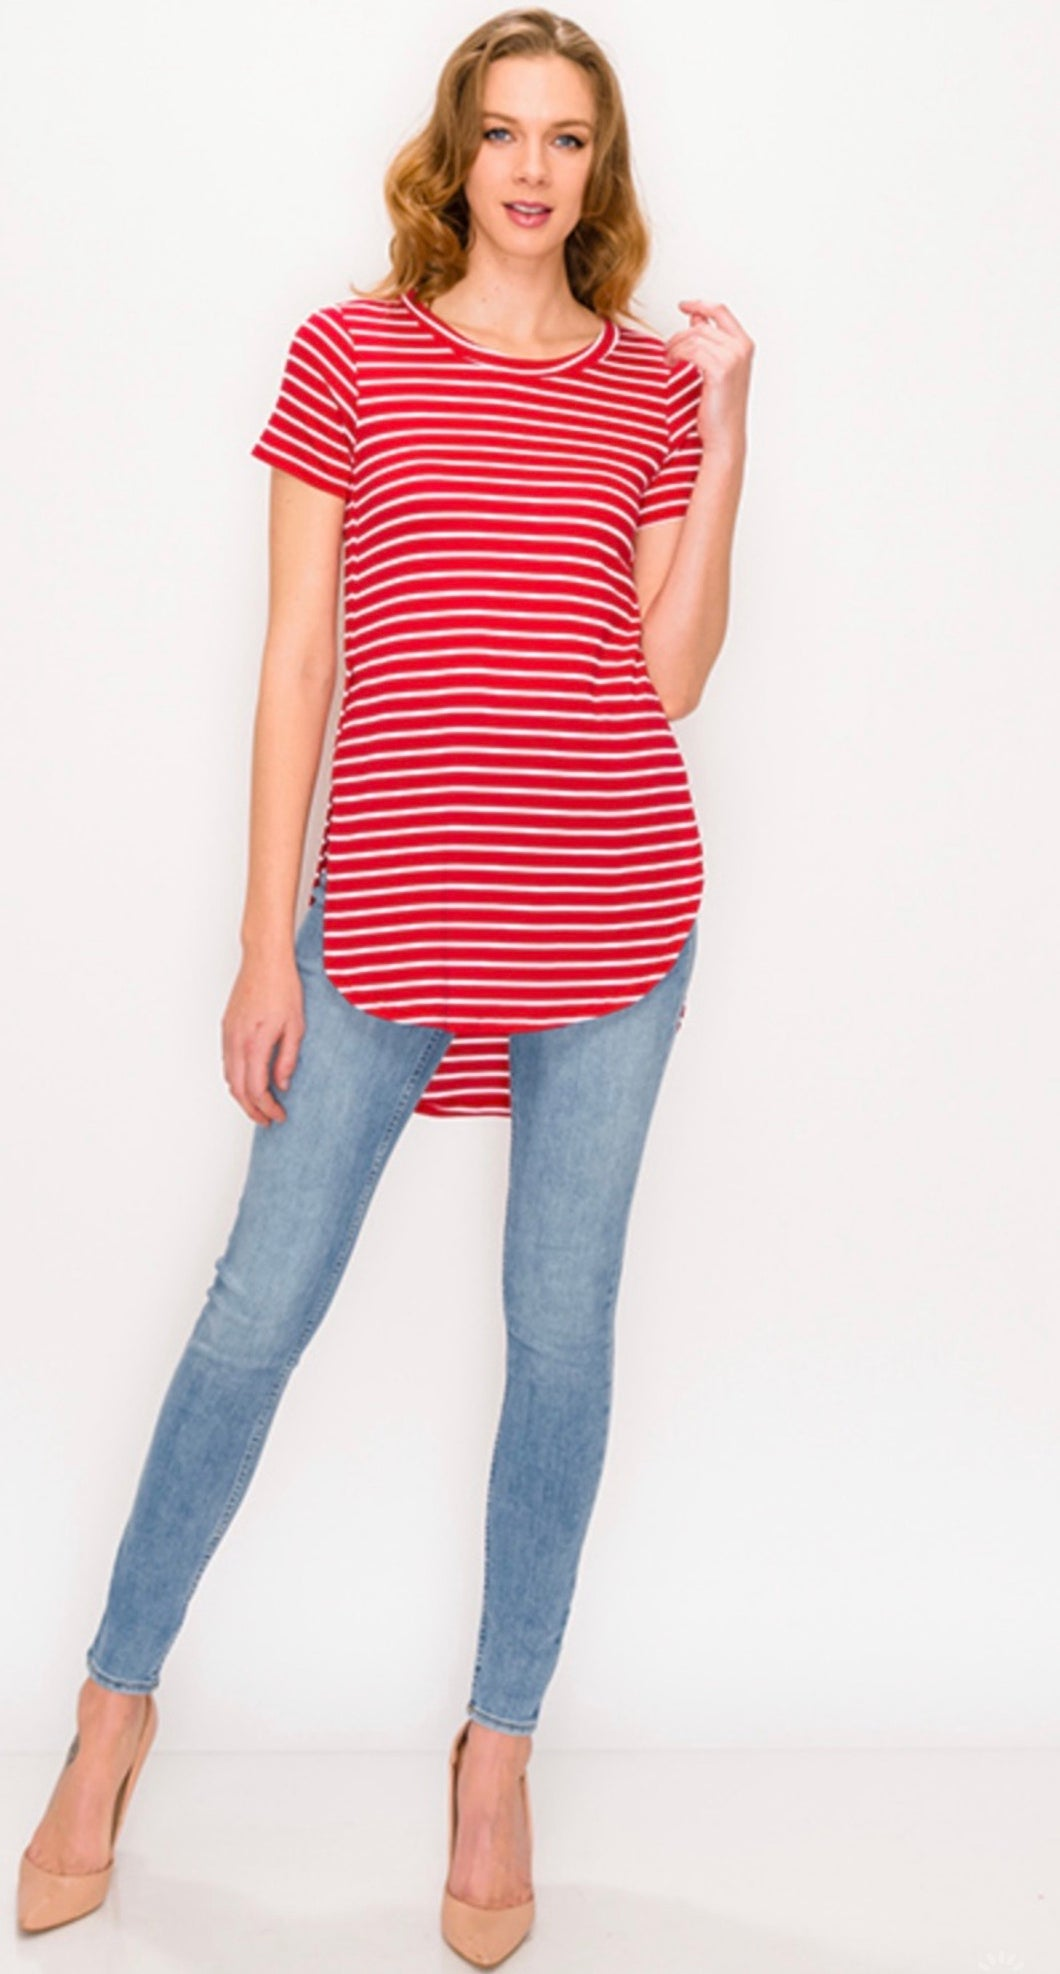 Red Striped Tunic Top